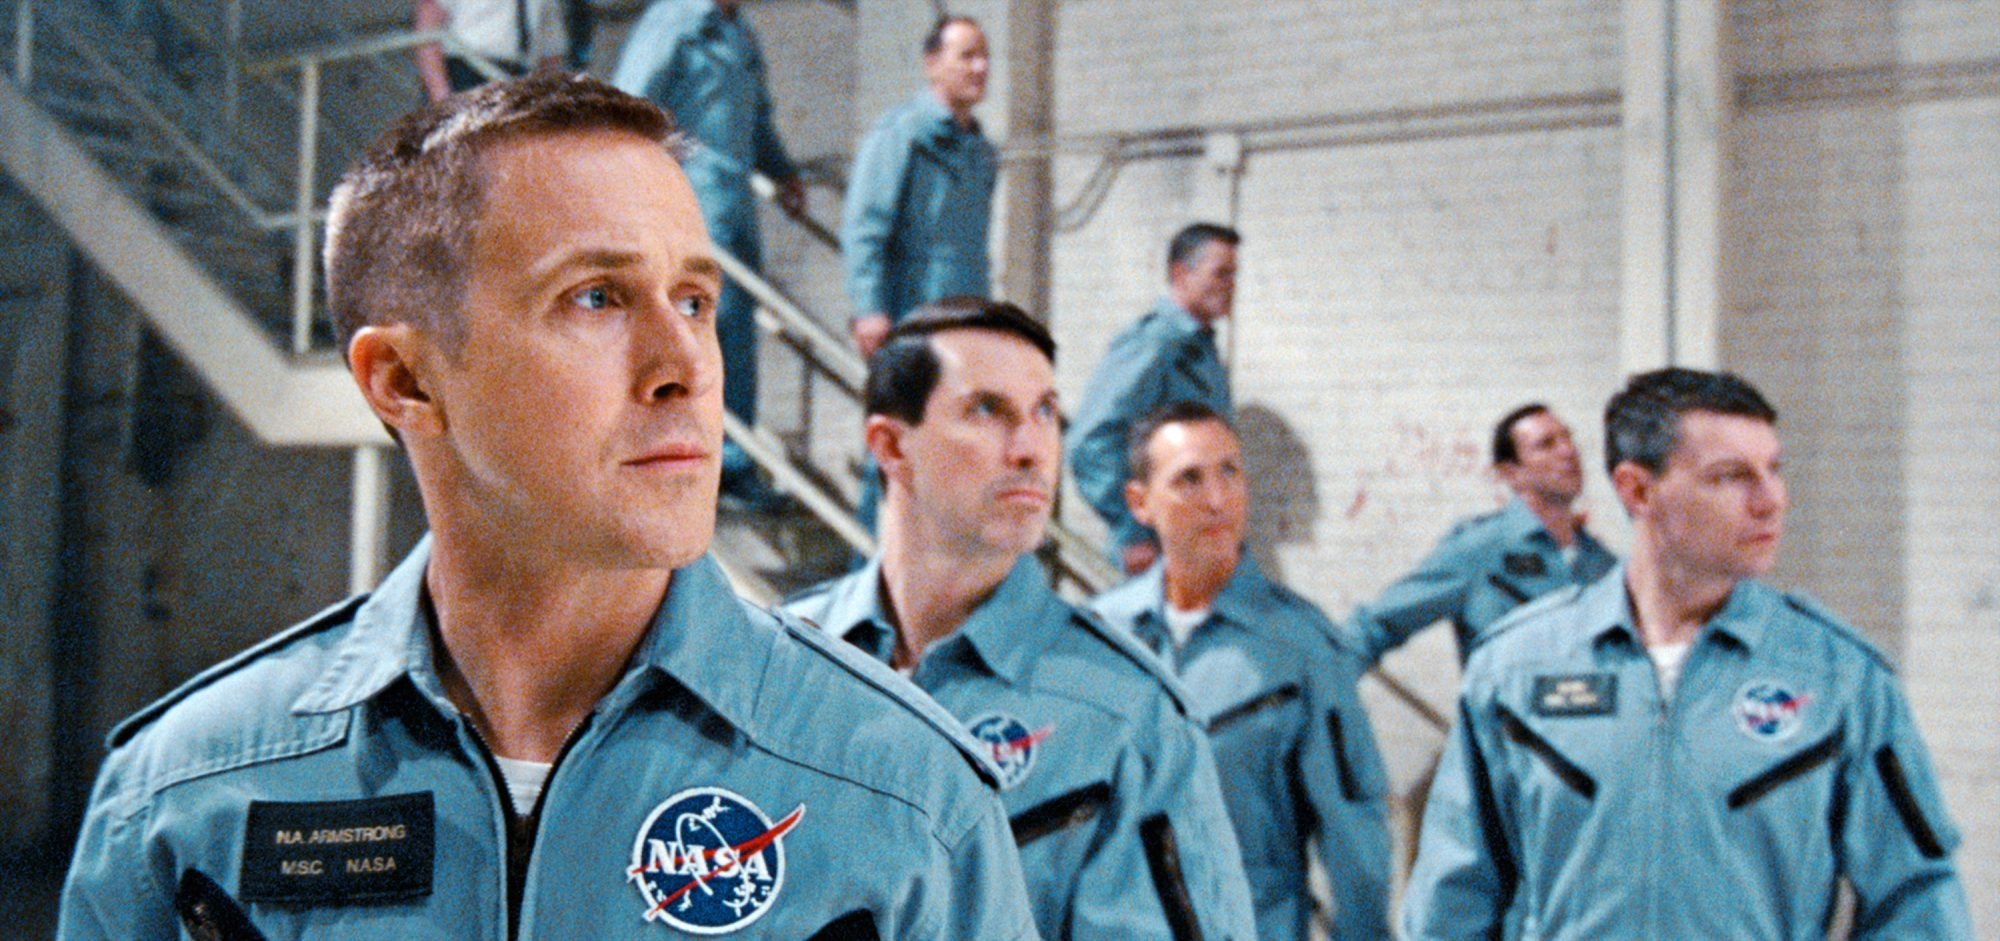 Ryan Gosling鈥檚 upcoming film First Man about Neil Armstrong